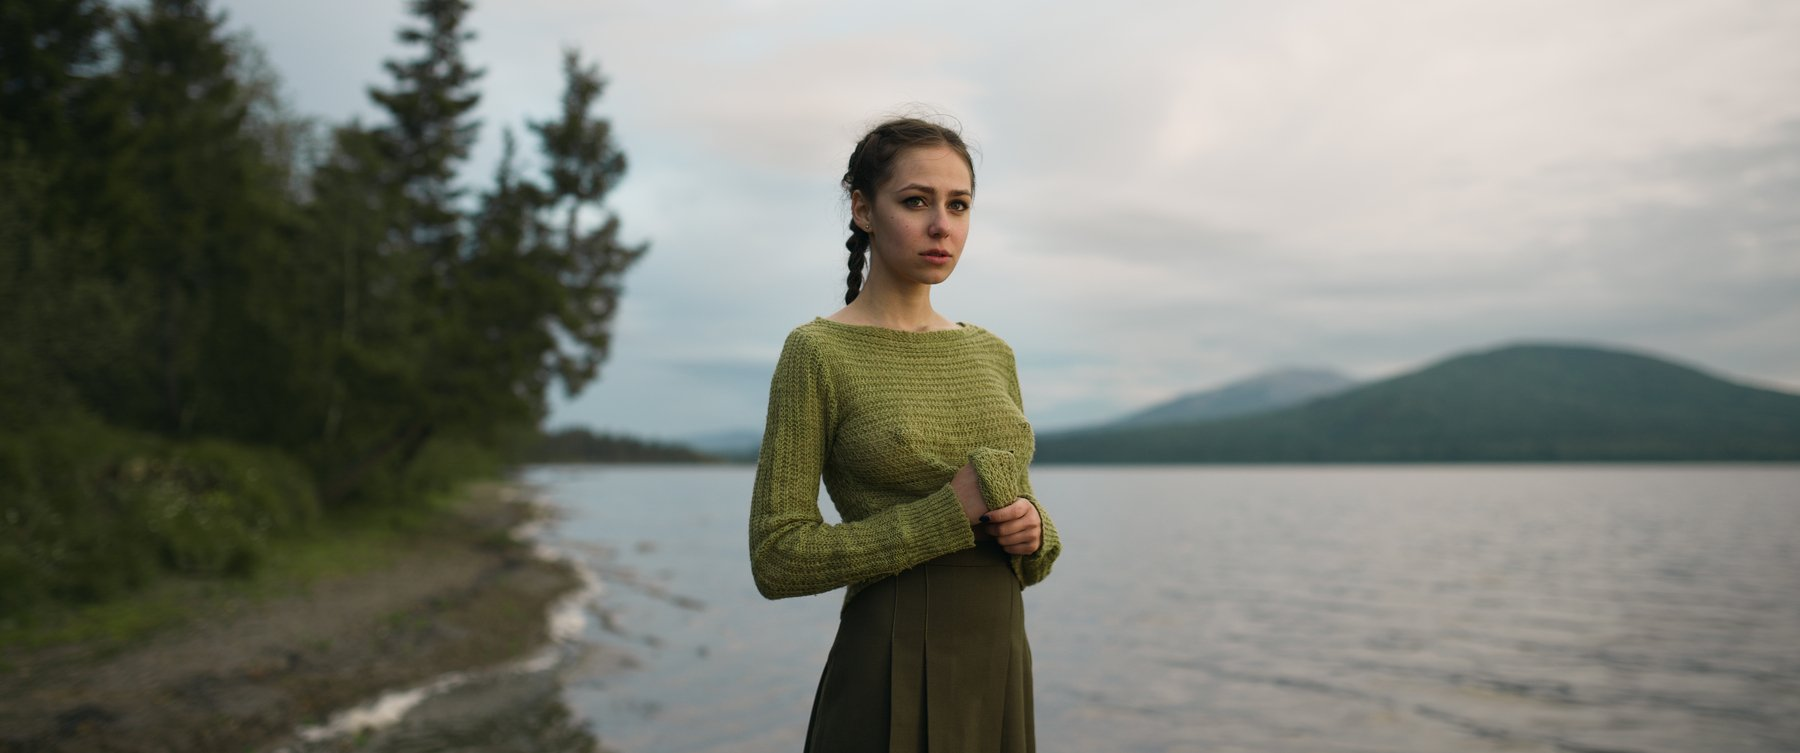 girl, portrait, nature, lake, ural, zuratkul, green, color, nice, mountains, mountain, russia, Роман Филиппов